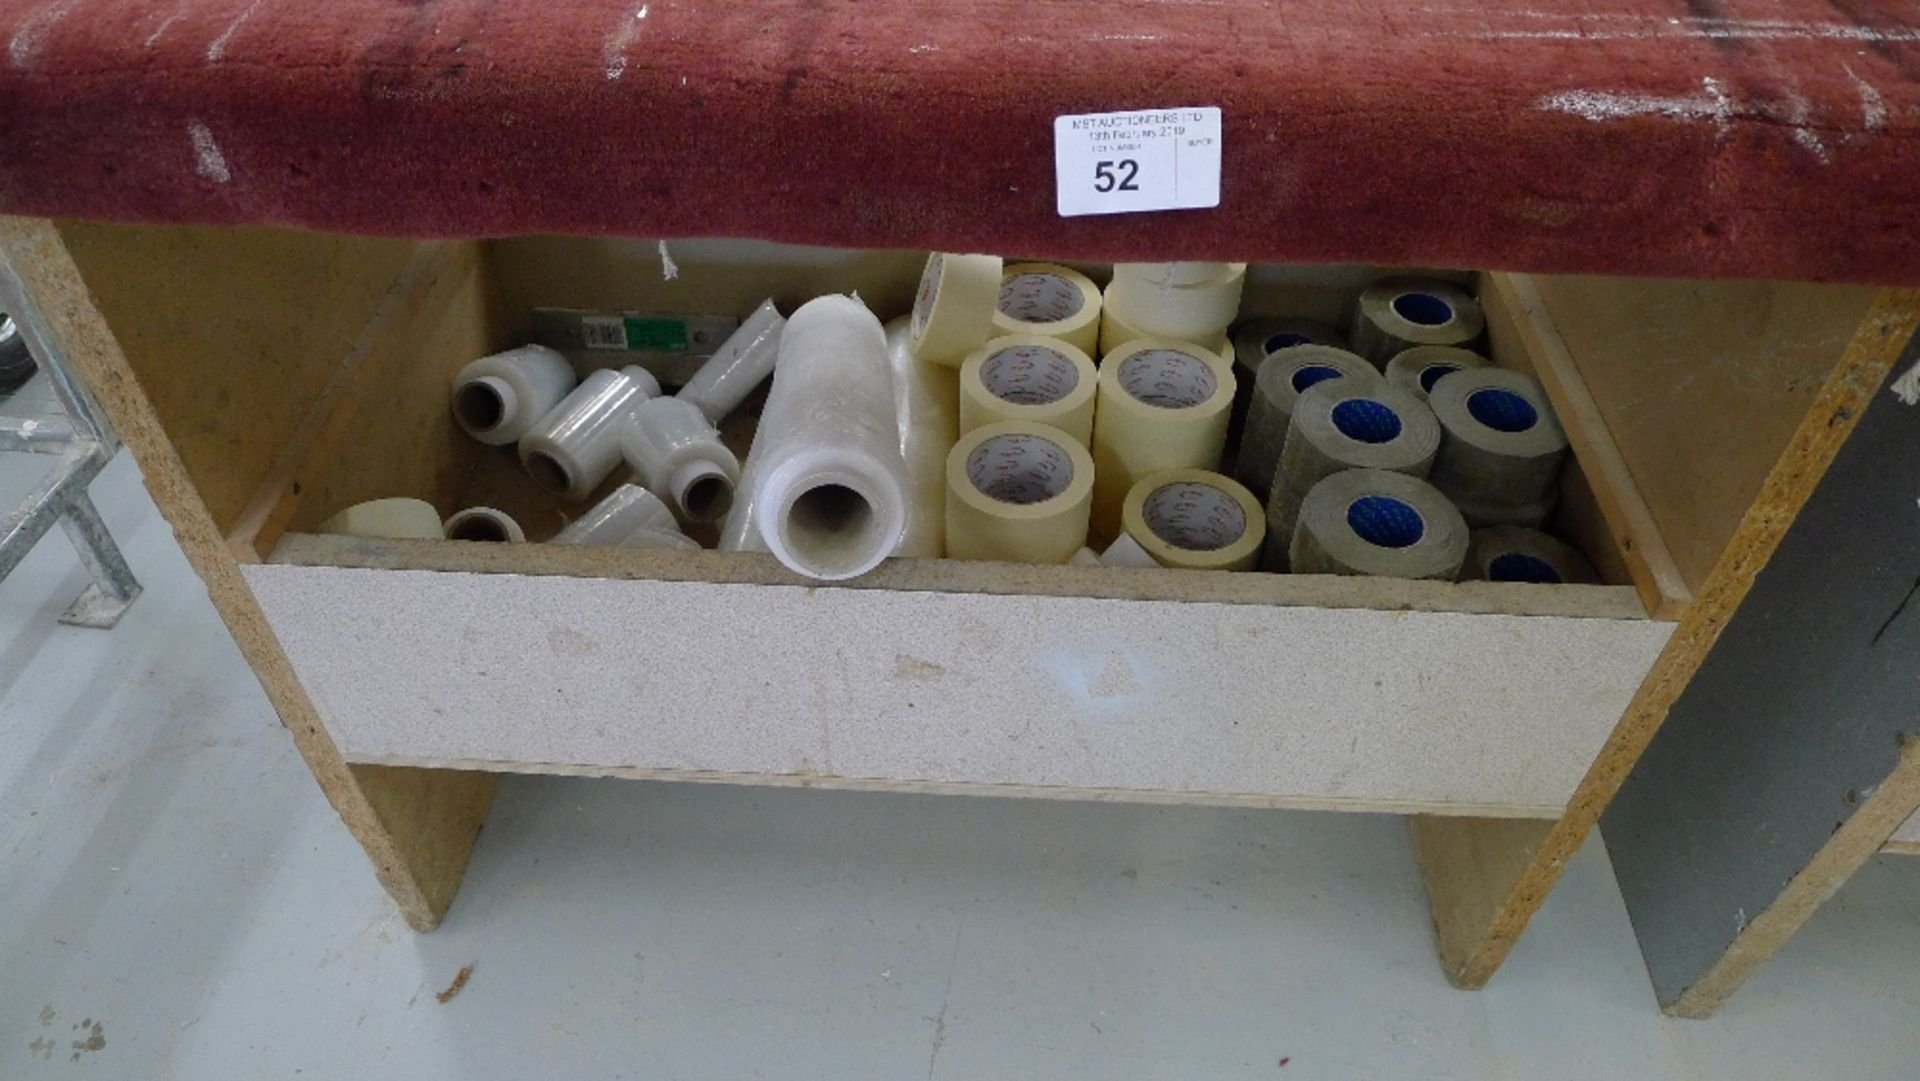 Lot 52 - 2 packaging benches and a quantity of various tape, shrink wrap etc